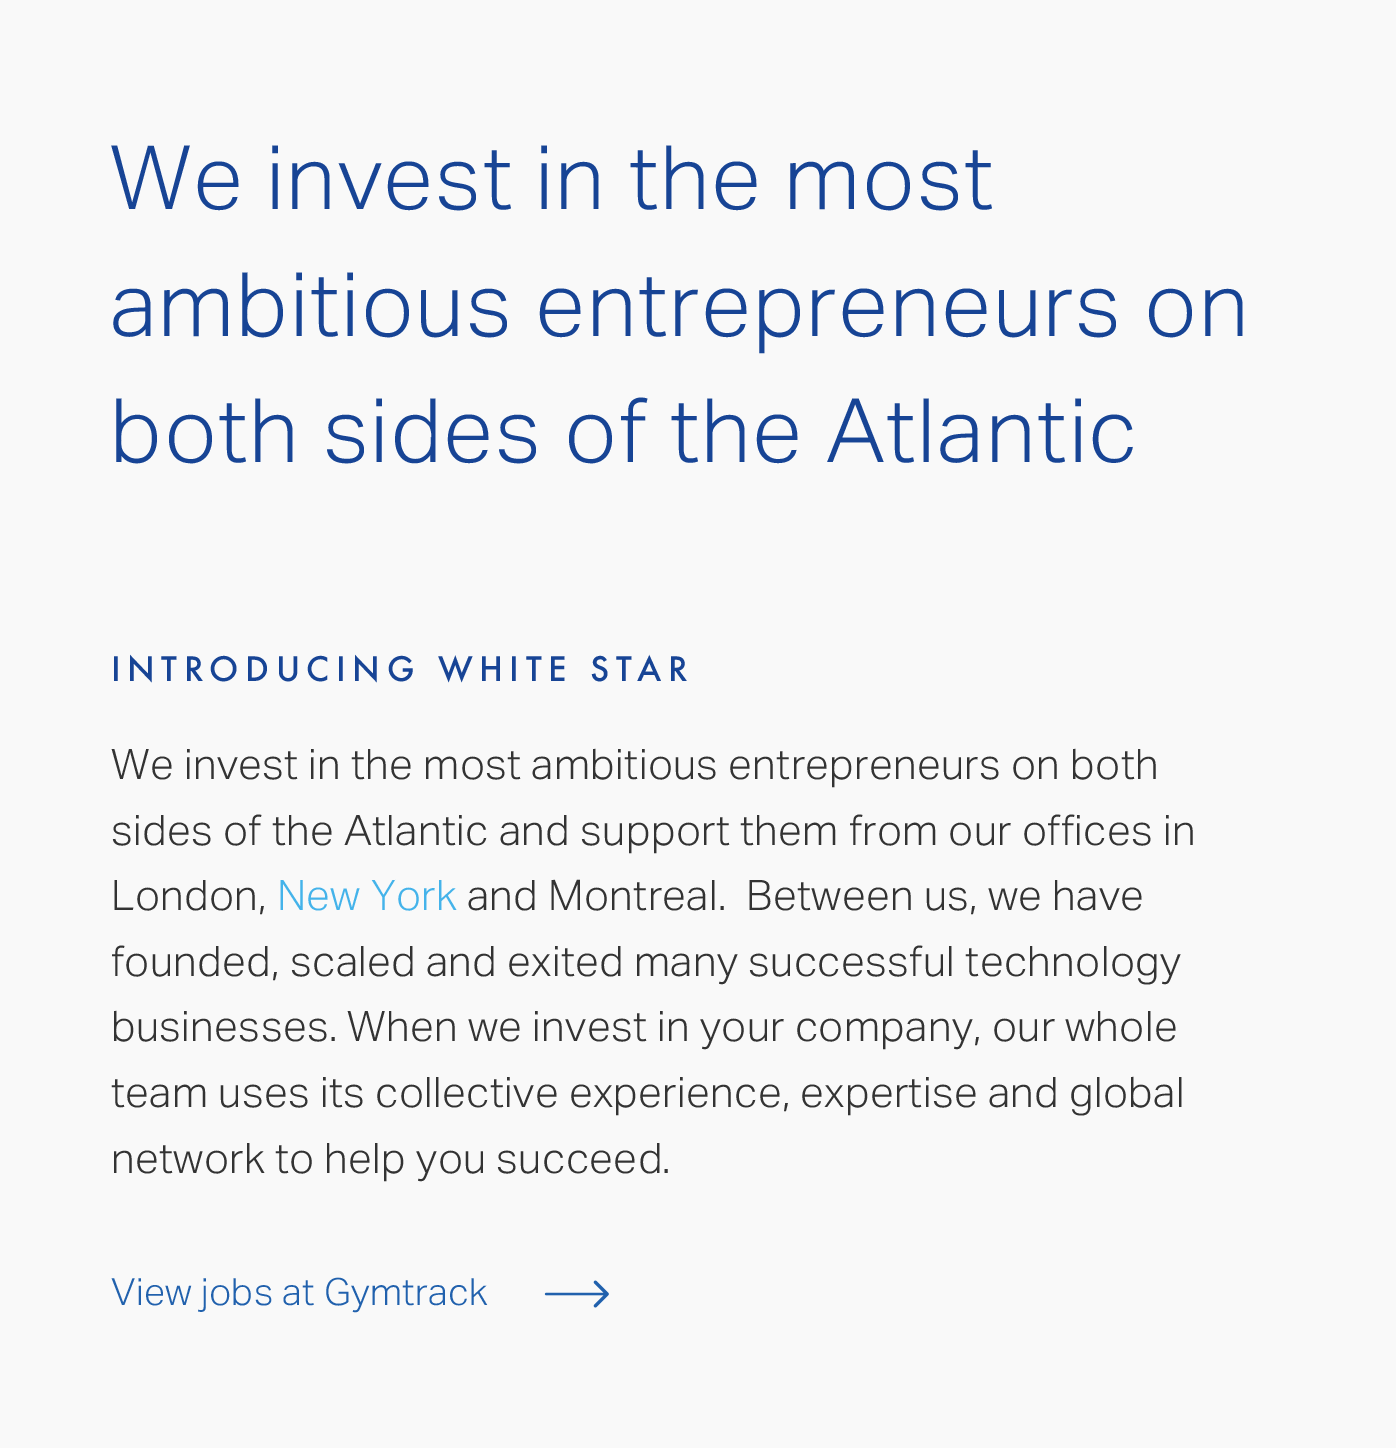 Website design for White Star Capital | Bluegg